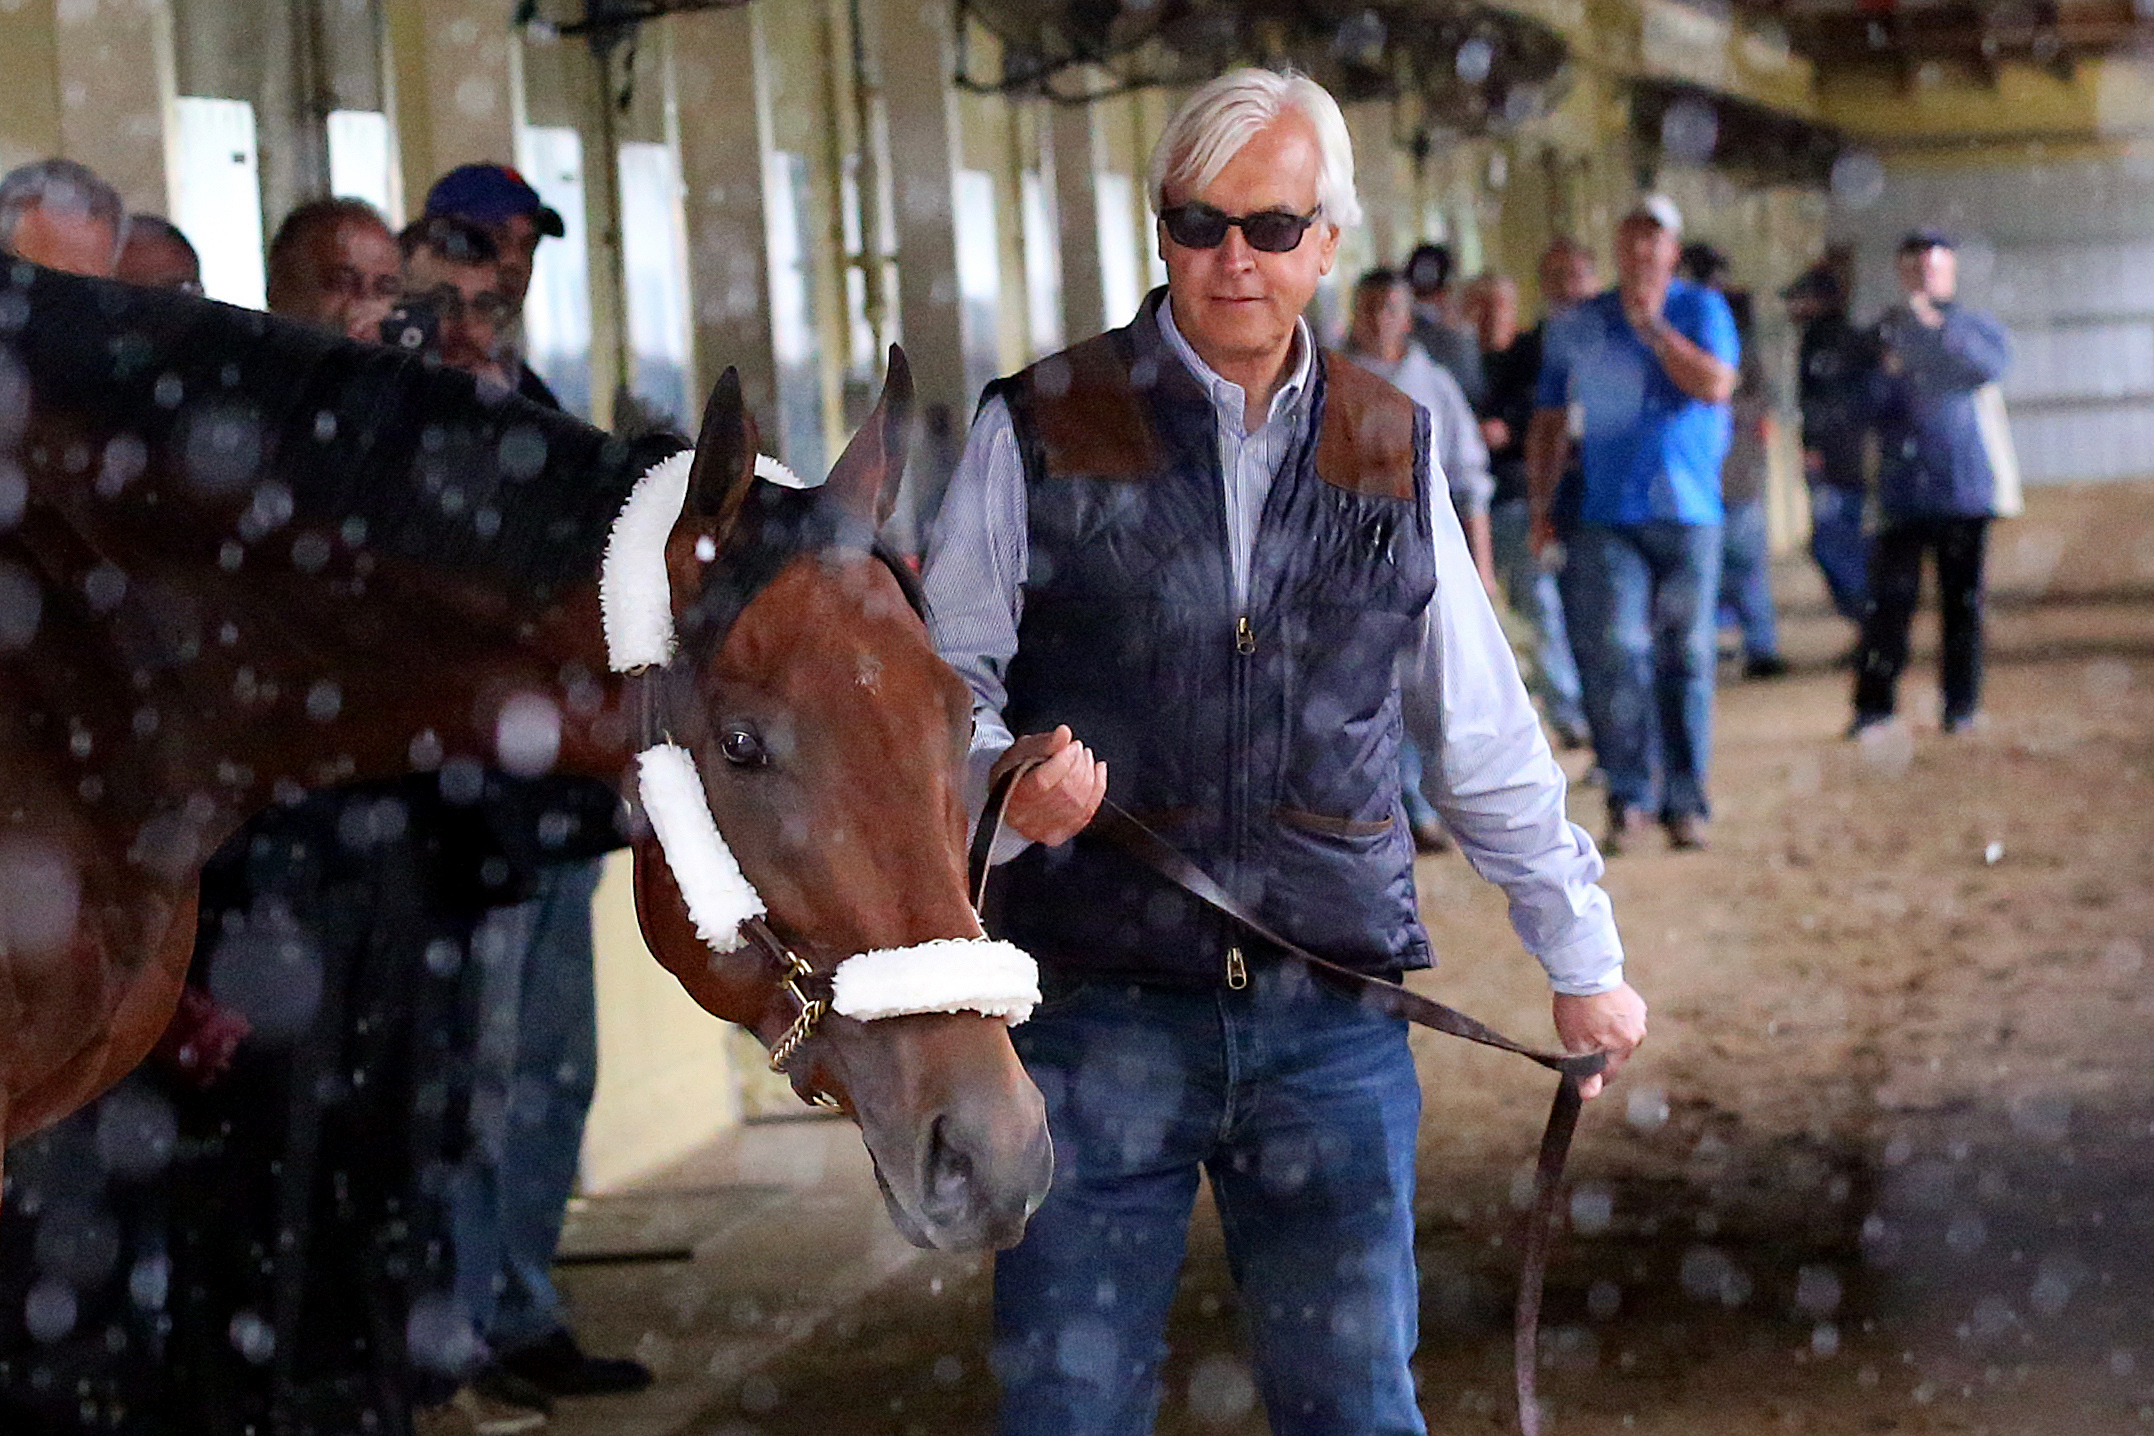 American Pharoah walks with trainer Bob Baffert at Belmont Park, June 2, 2015. Photo by Anthony Gruppuso/USA Today via Reuters